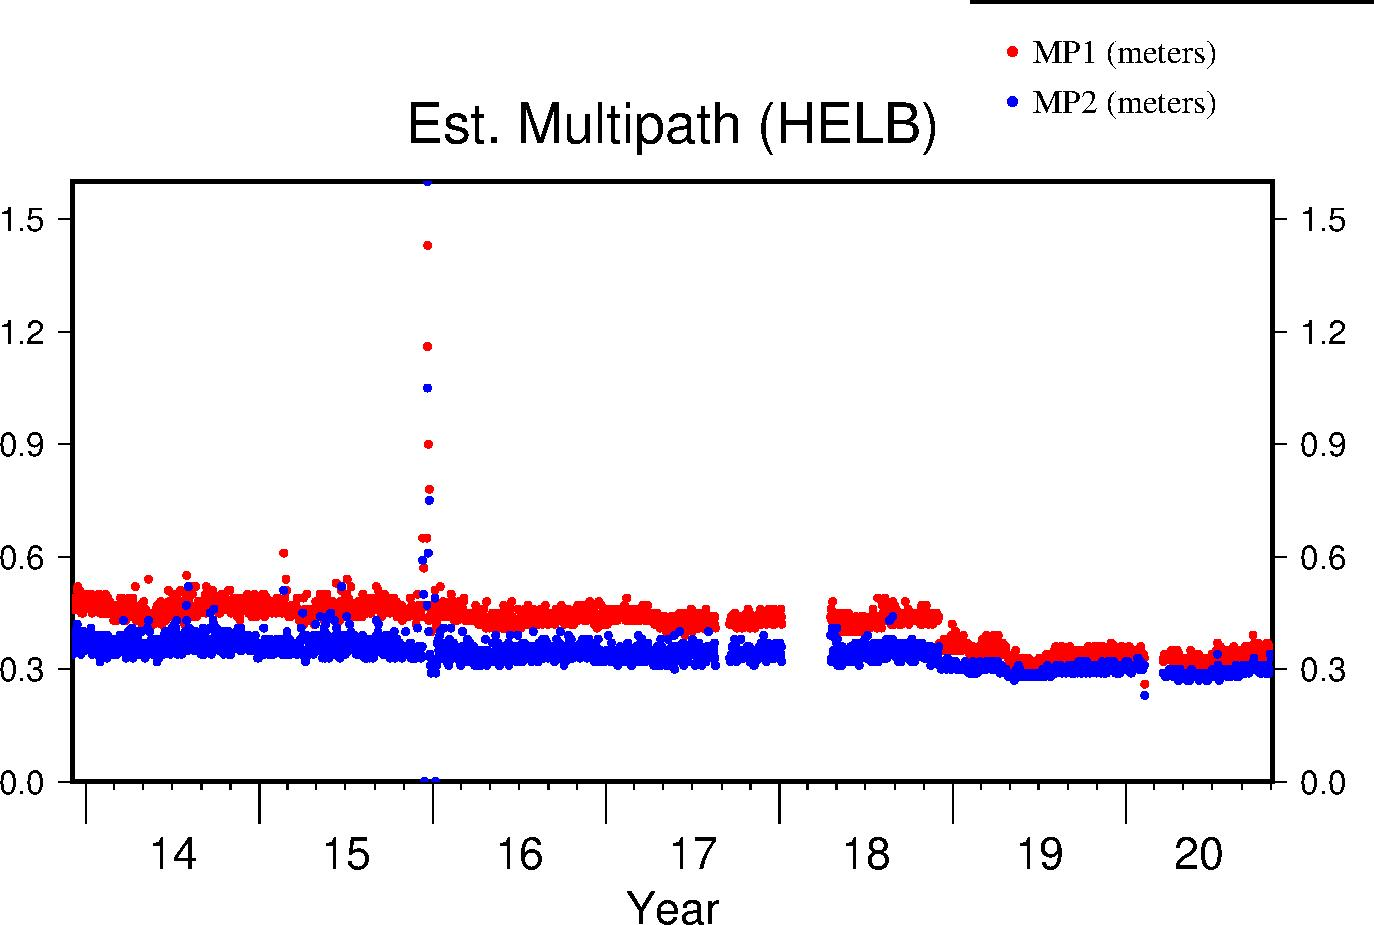 HELB multipath lifetime